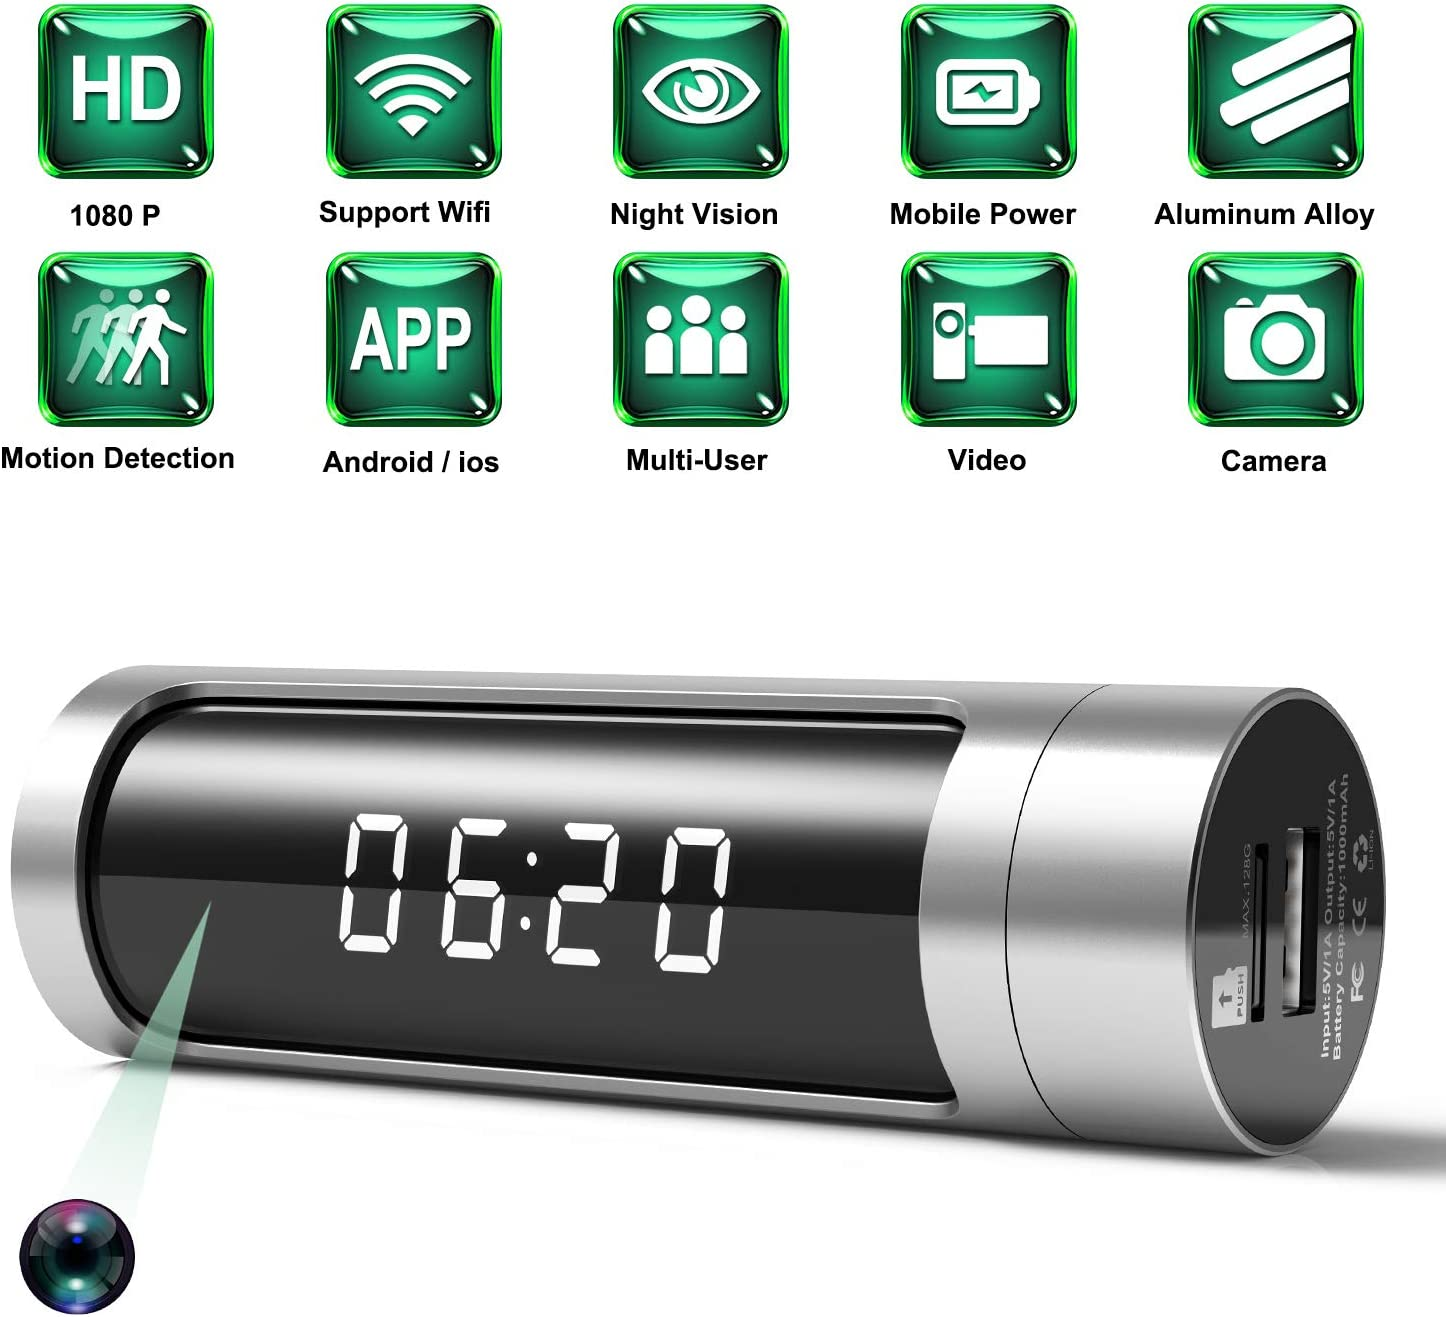 Spy Camera, 1080P Hidden Camera Clock WiFi Wireless IP Cameras Aluminium Alloys Housing Video Recorder for Home Security Monitoring Nanny Cam with Night Vision Motion Detection Power Bank Latest